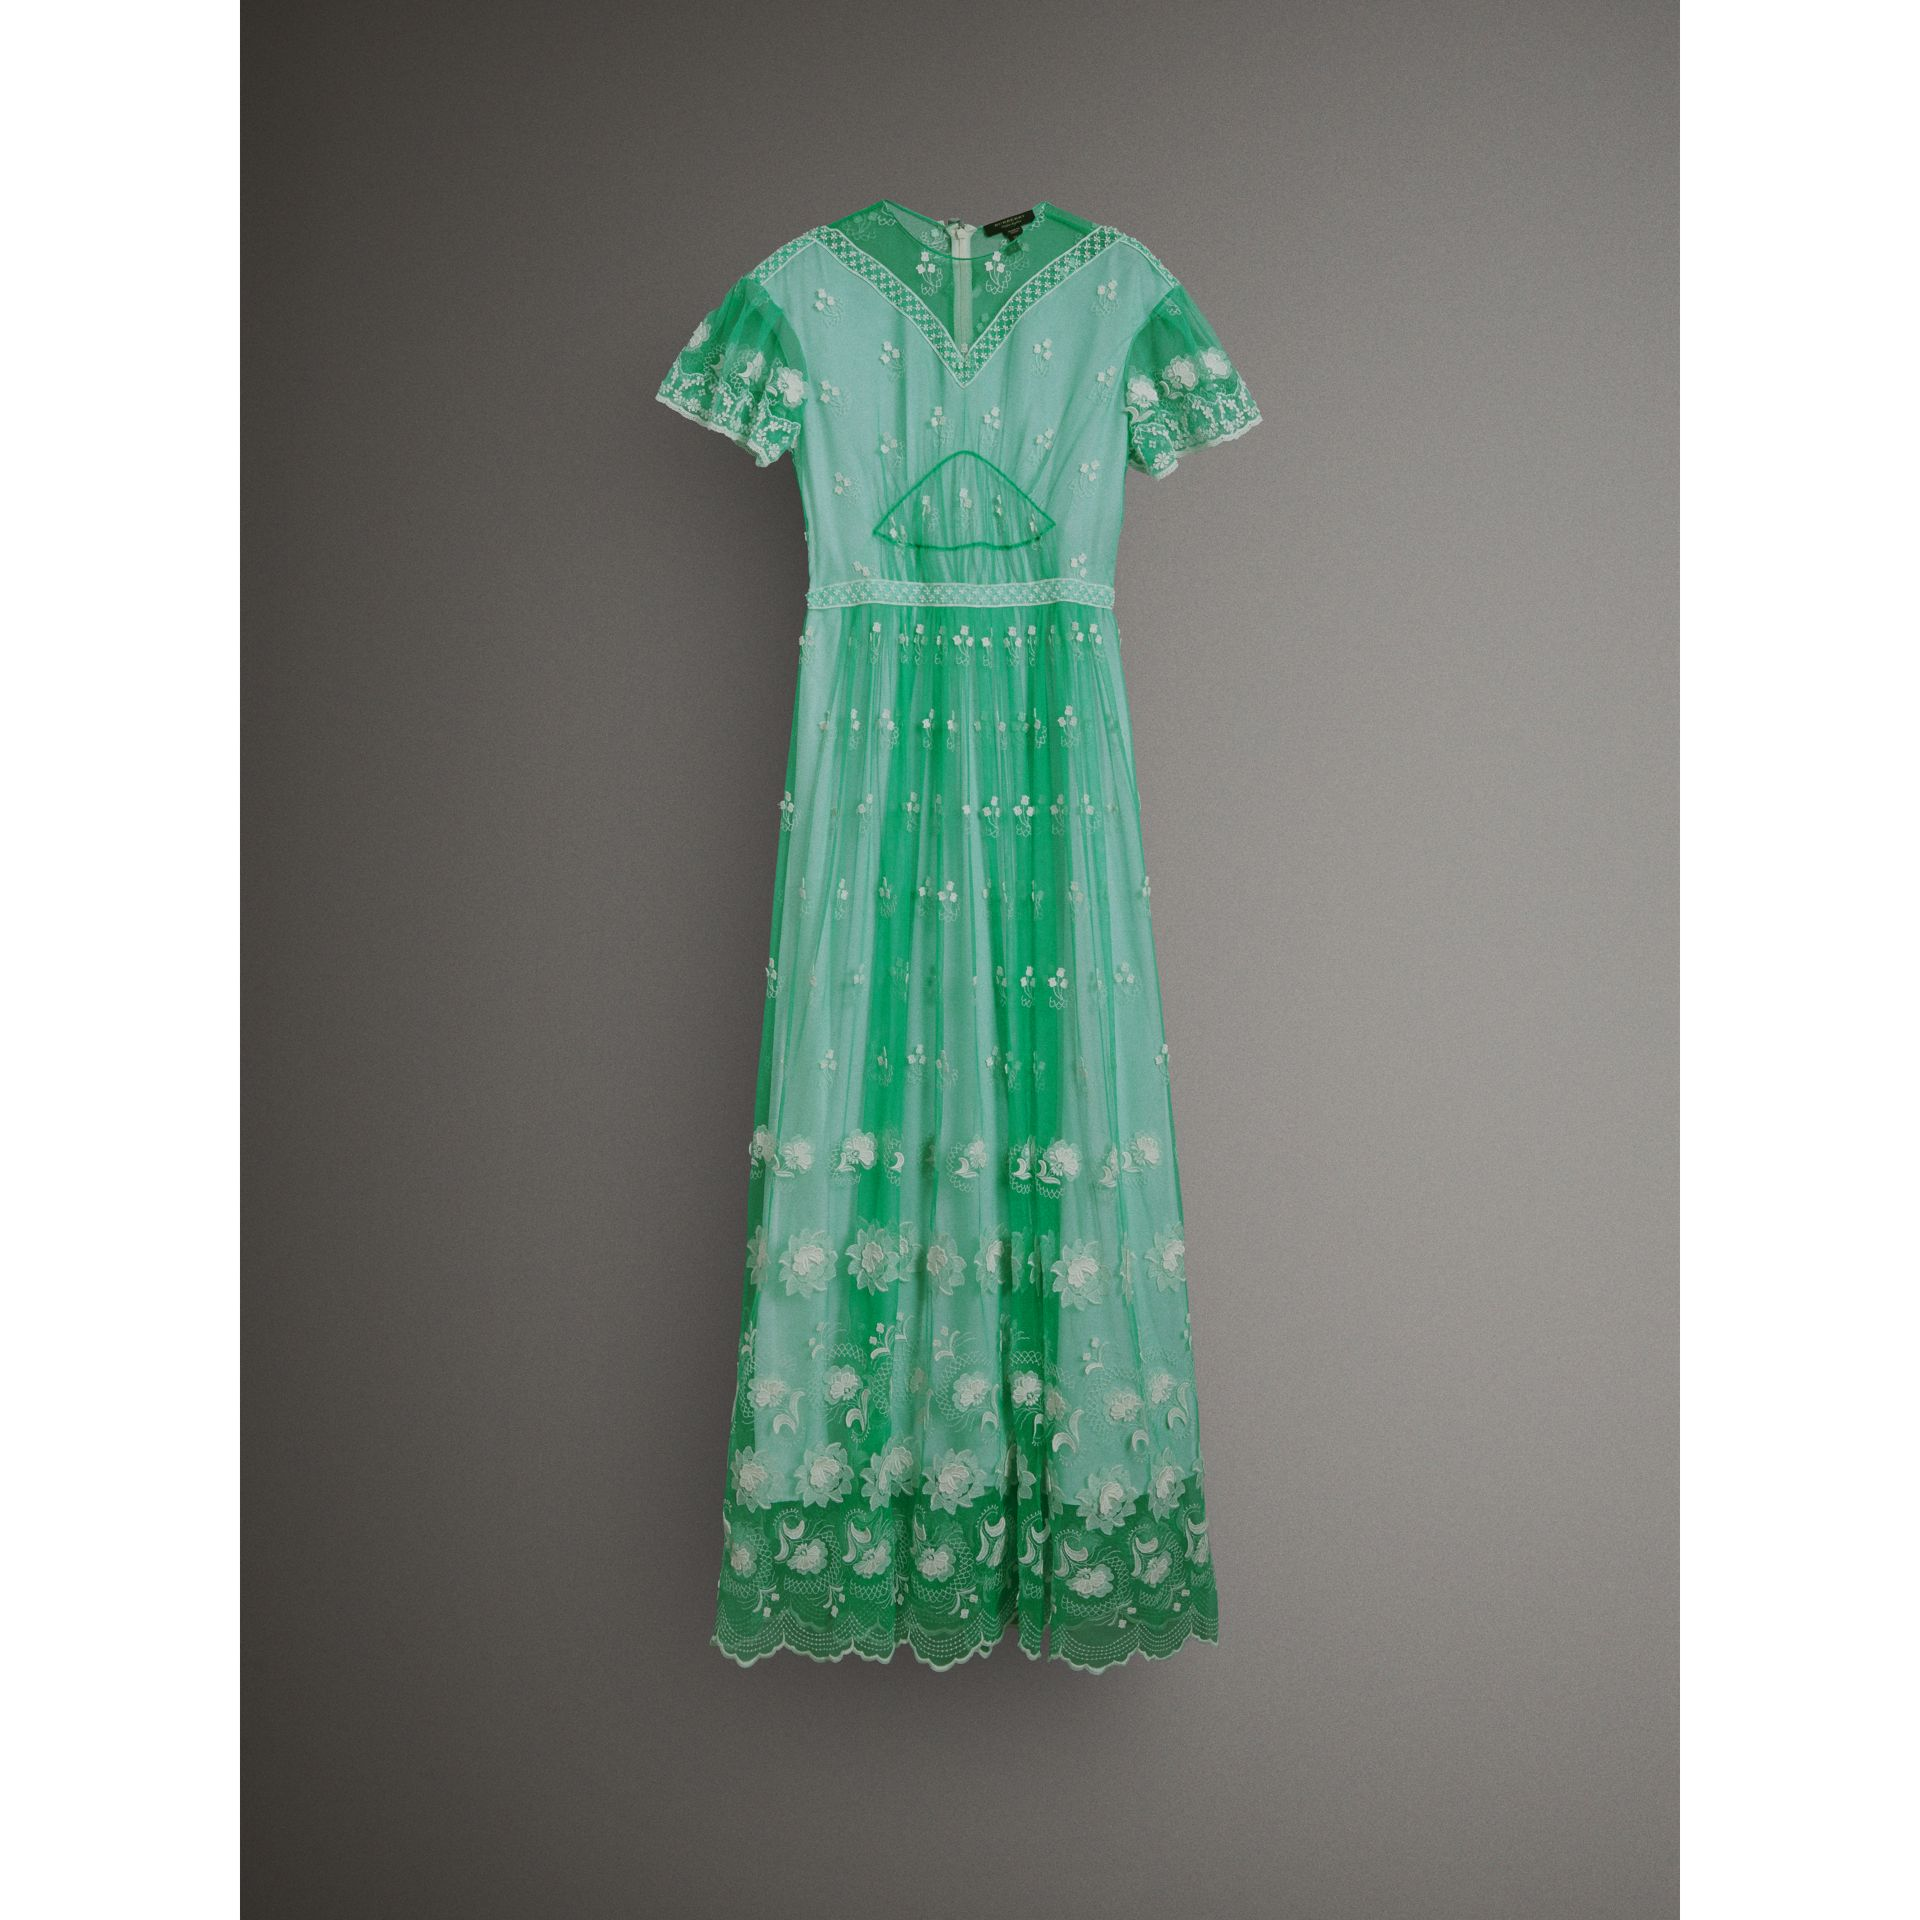 Embroidered Tulle Gathered Dress in Aqua Green/white - Women | Burberry - gallery image 3